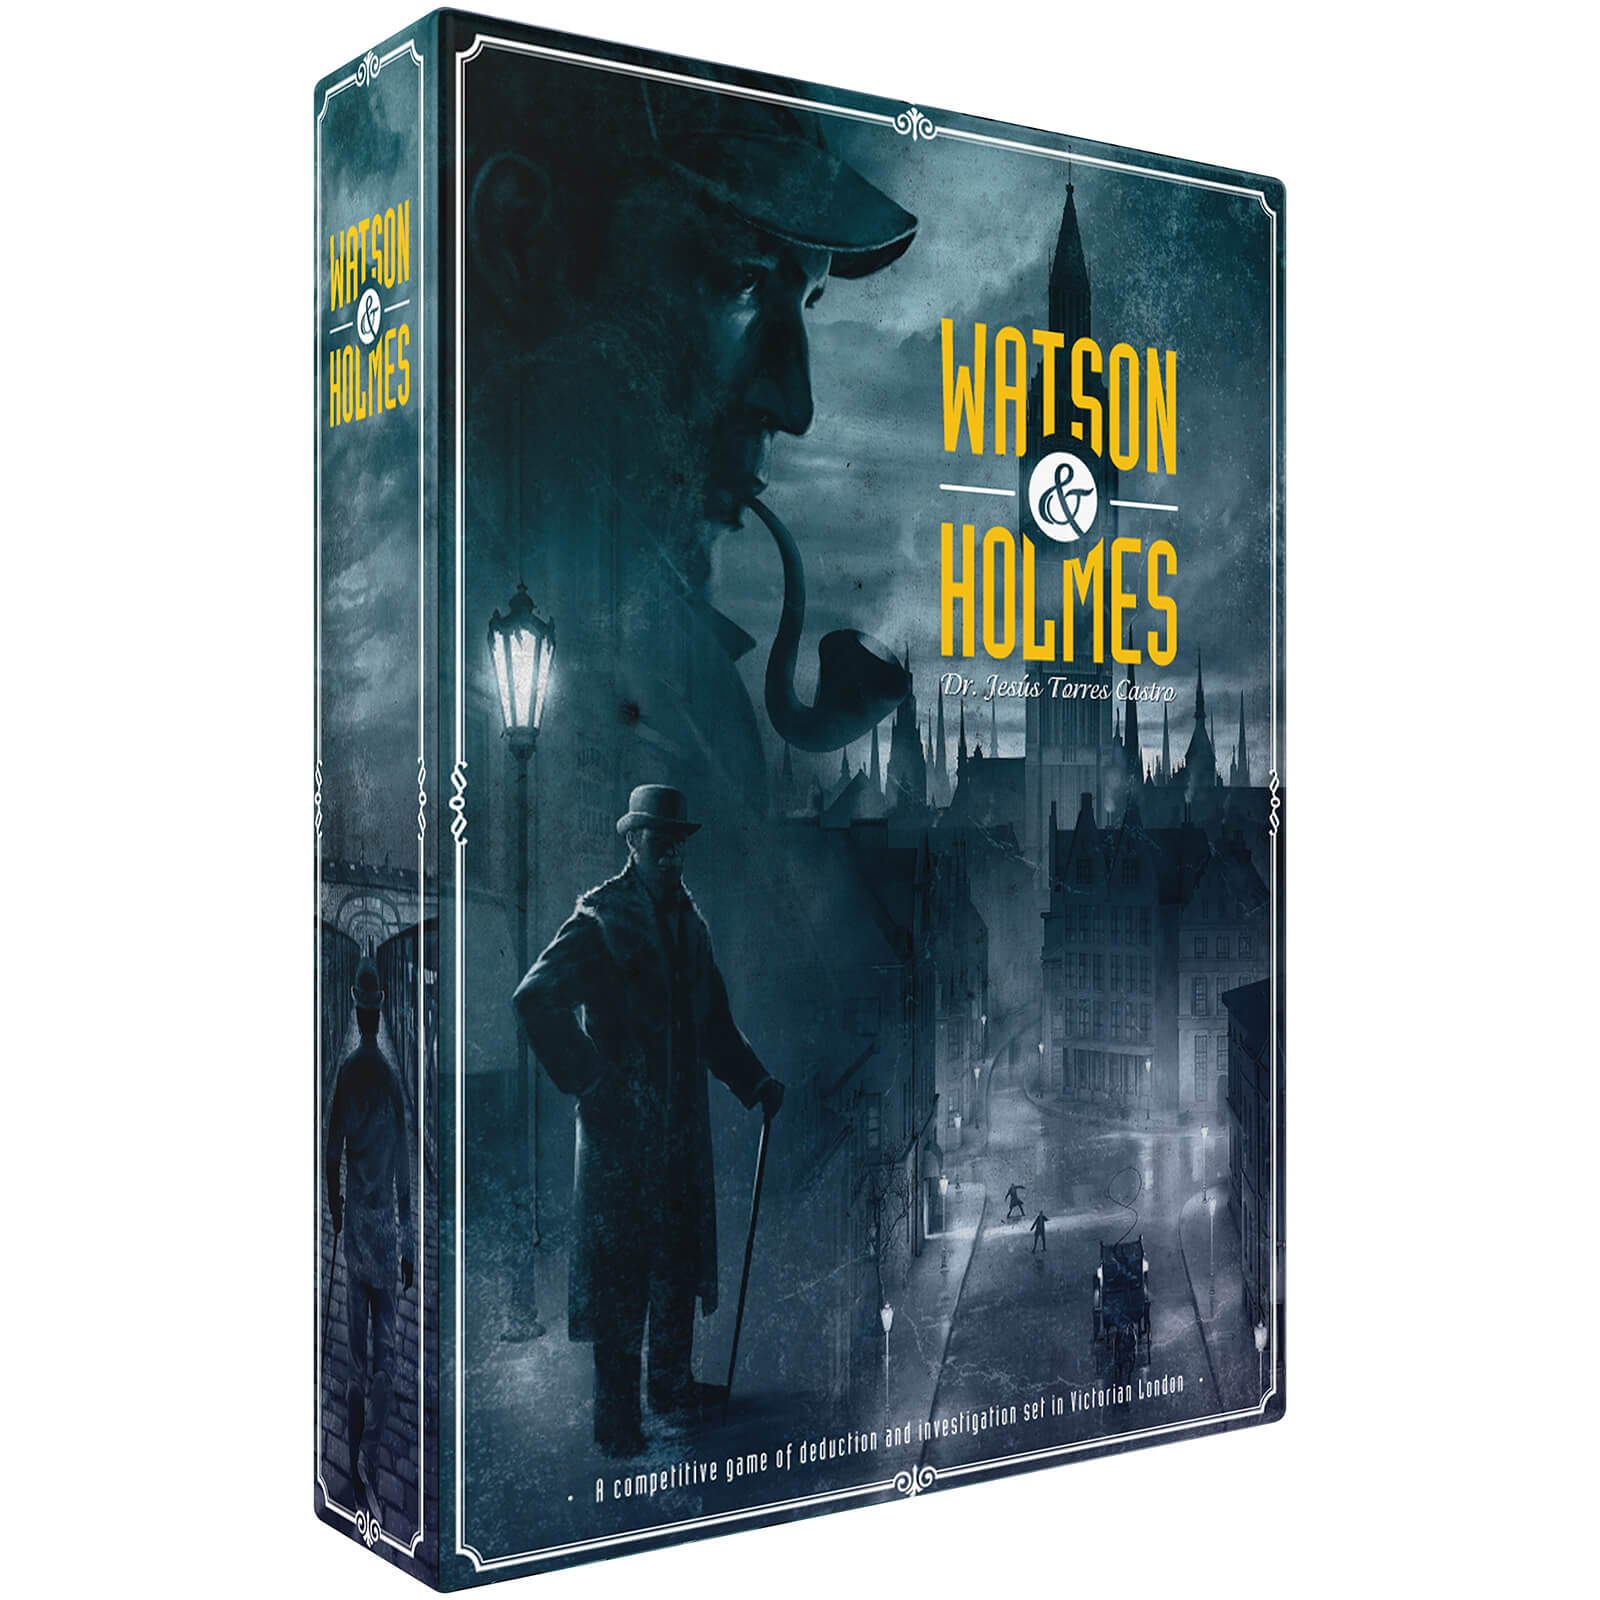 Watson and Holmes Game